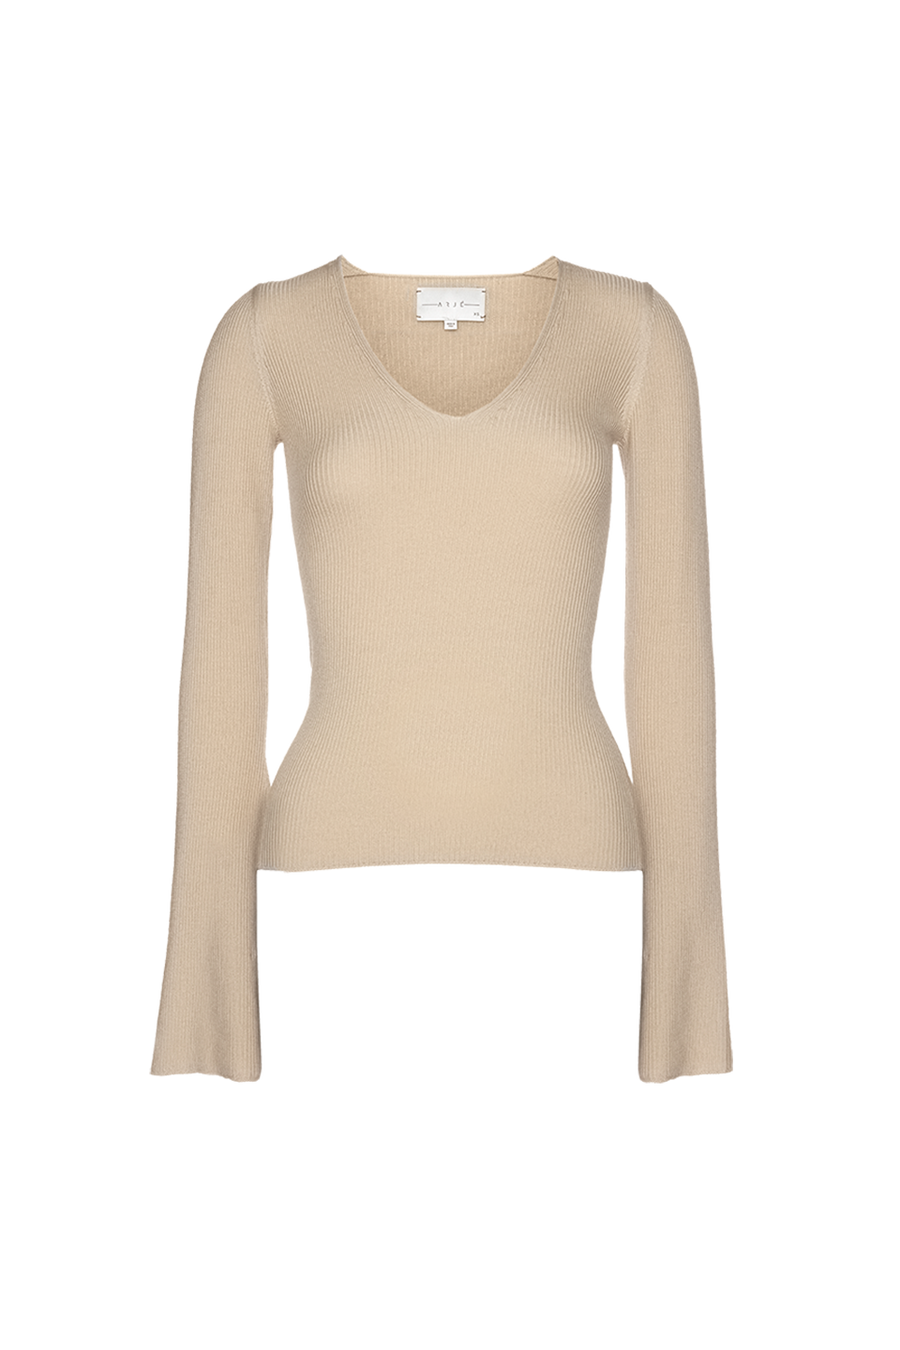 THE ST MORITZ WOOL FITTED VNECK KNIT